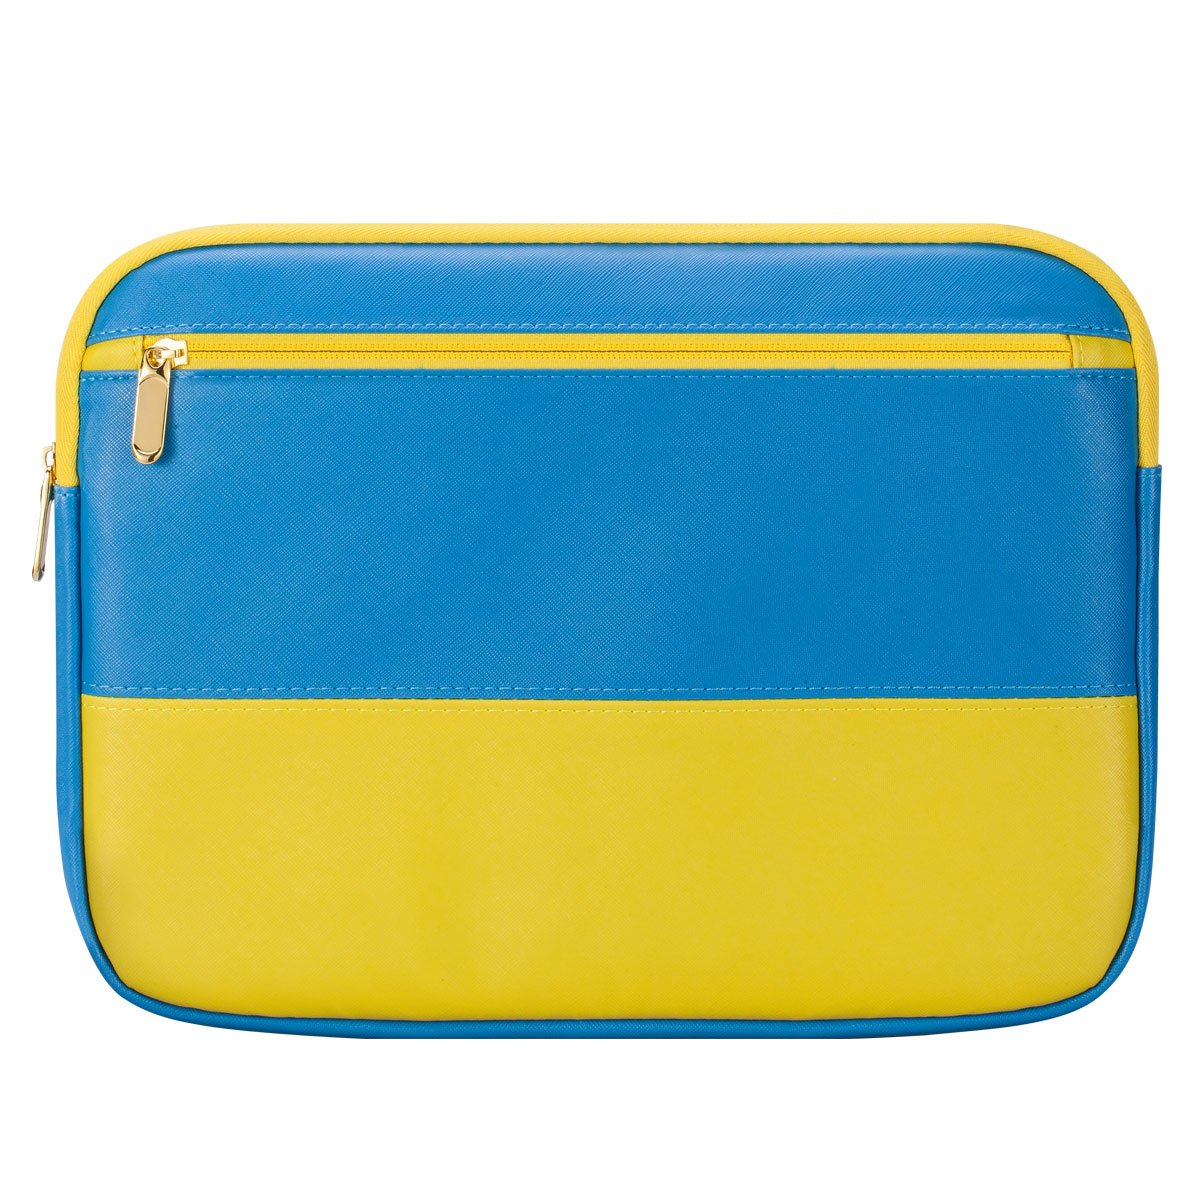 Laptop Bag Abstract Painting Yellow 15-15.4 Inch Laptop Case College Students Business People Office Workers Briefcase Messenger Shoulder Bag for Men Women